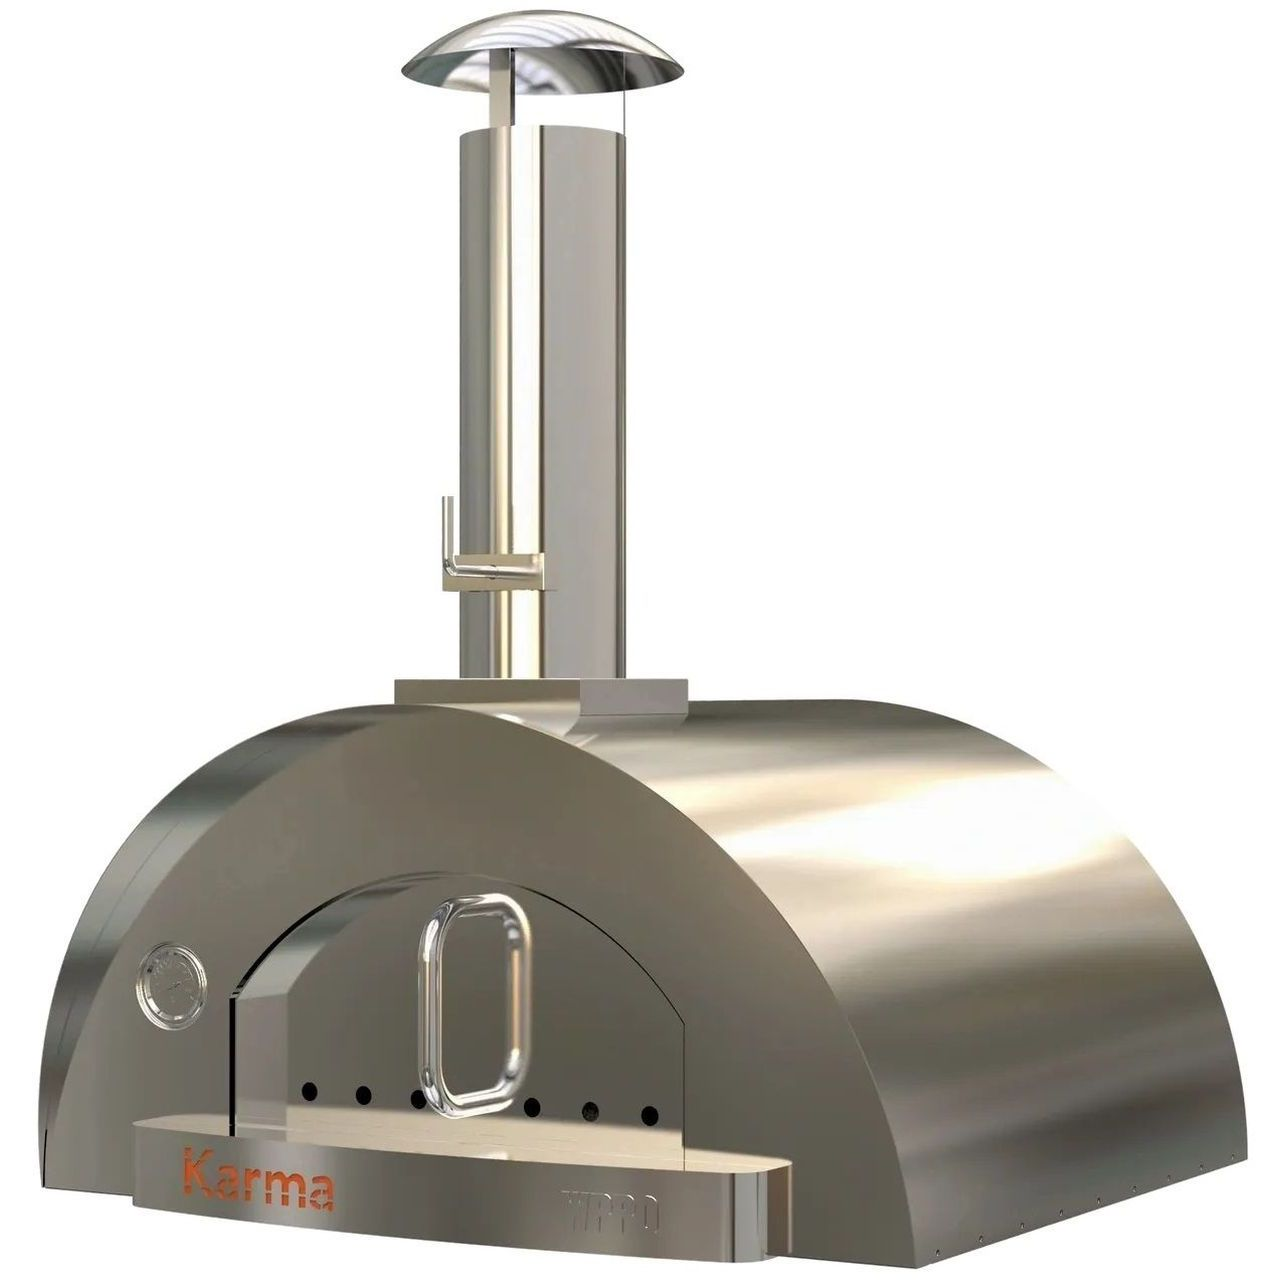 WPPO Karma 32 304SS Professional Wood Fired Oven - Stainless Steel